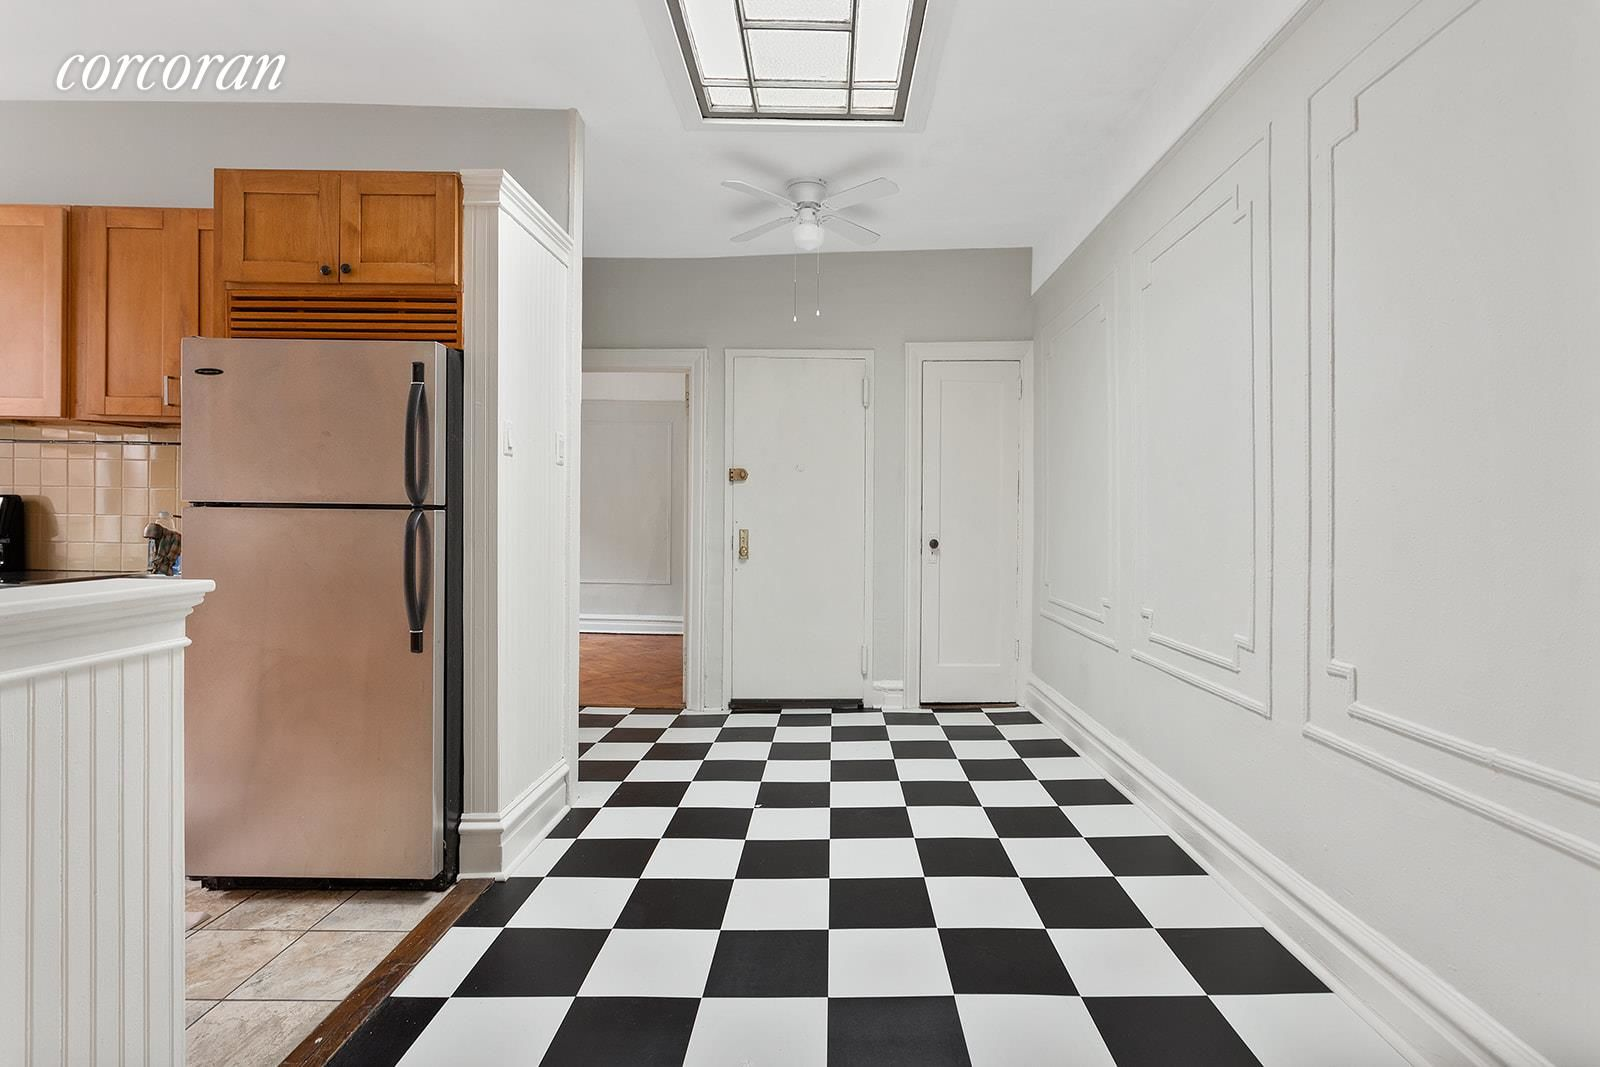 566 Osborn St Photo 6 - NYC-Real-Estate-681128